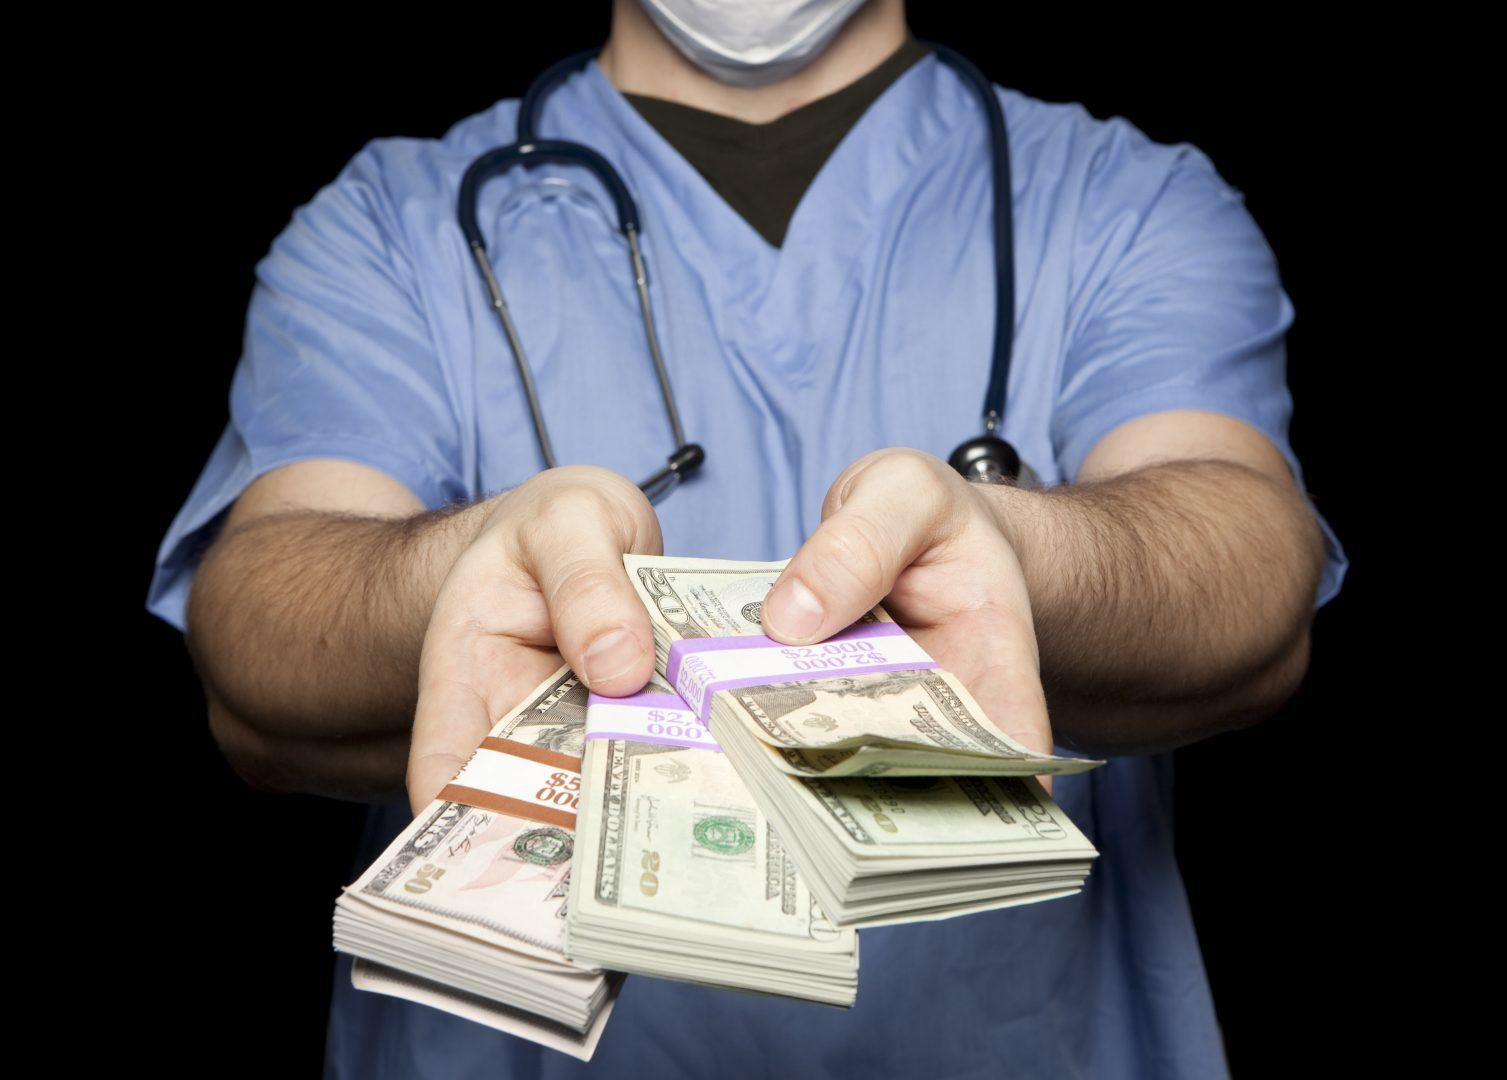 Healthcare remains a target for ransomware